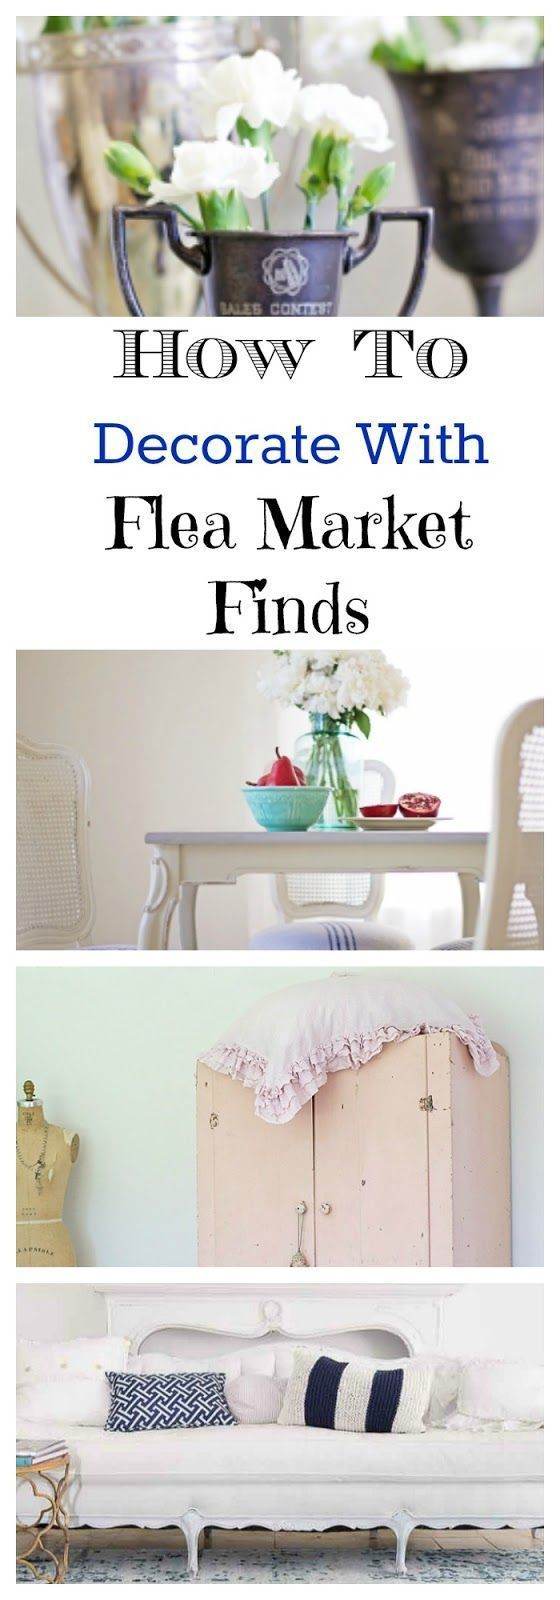 32 best flea market fabulous images on pinterest flea Lara spencer decorating